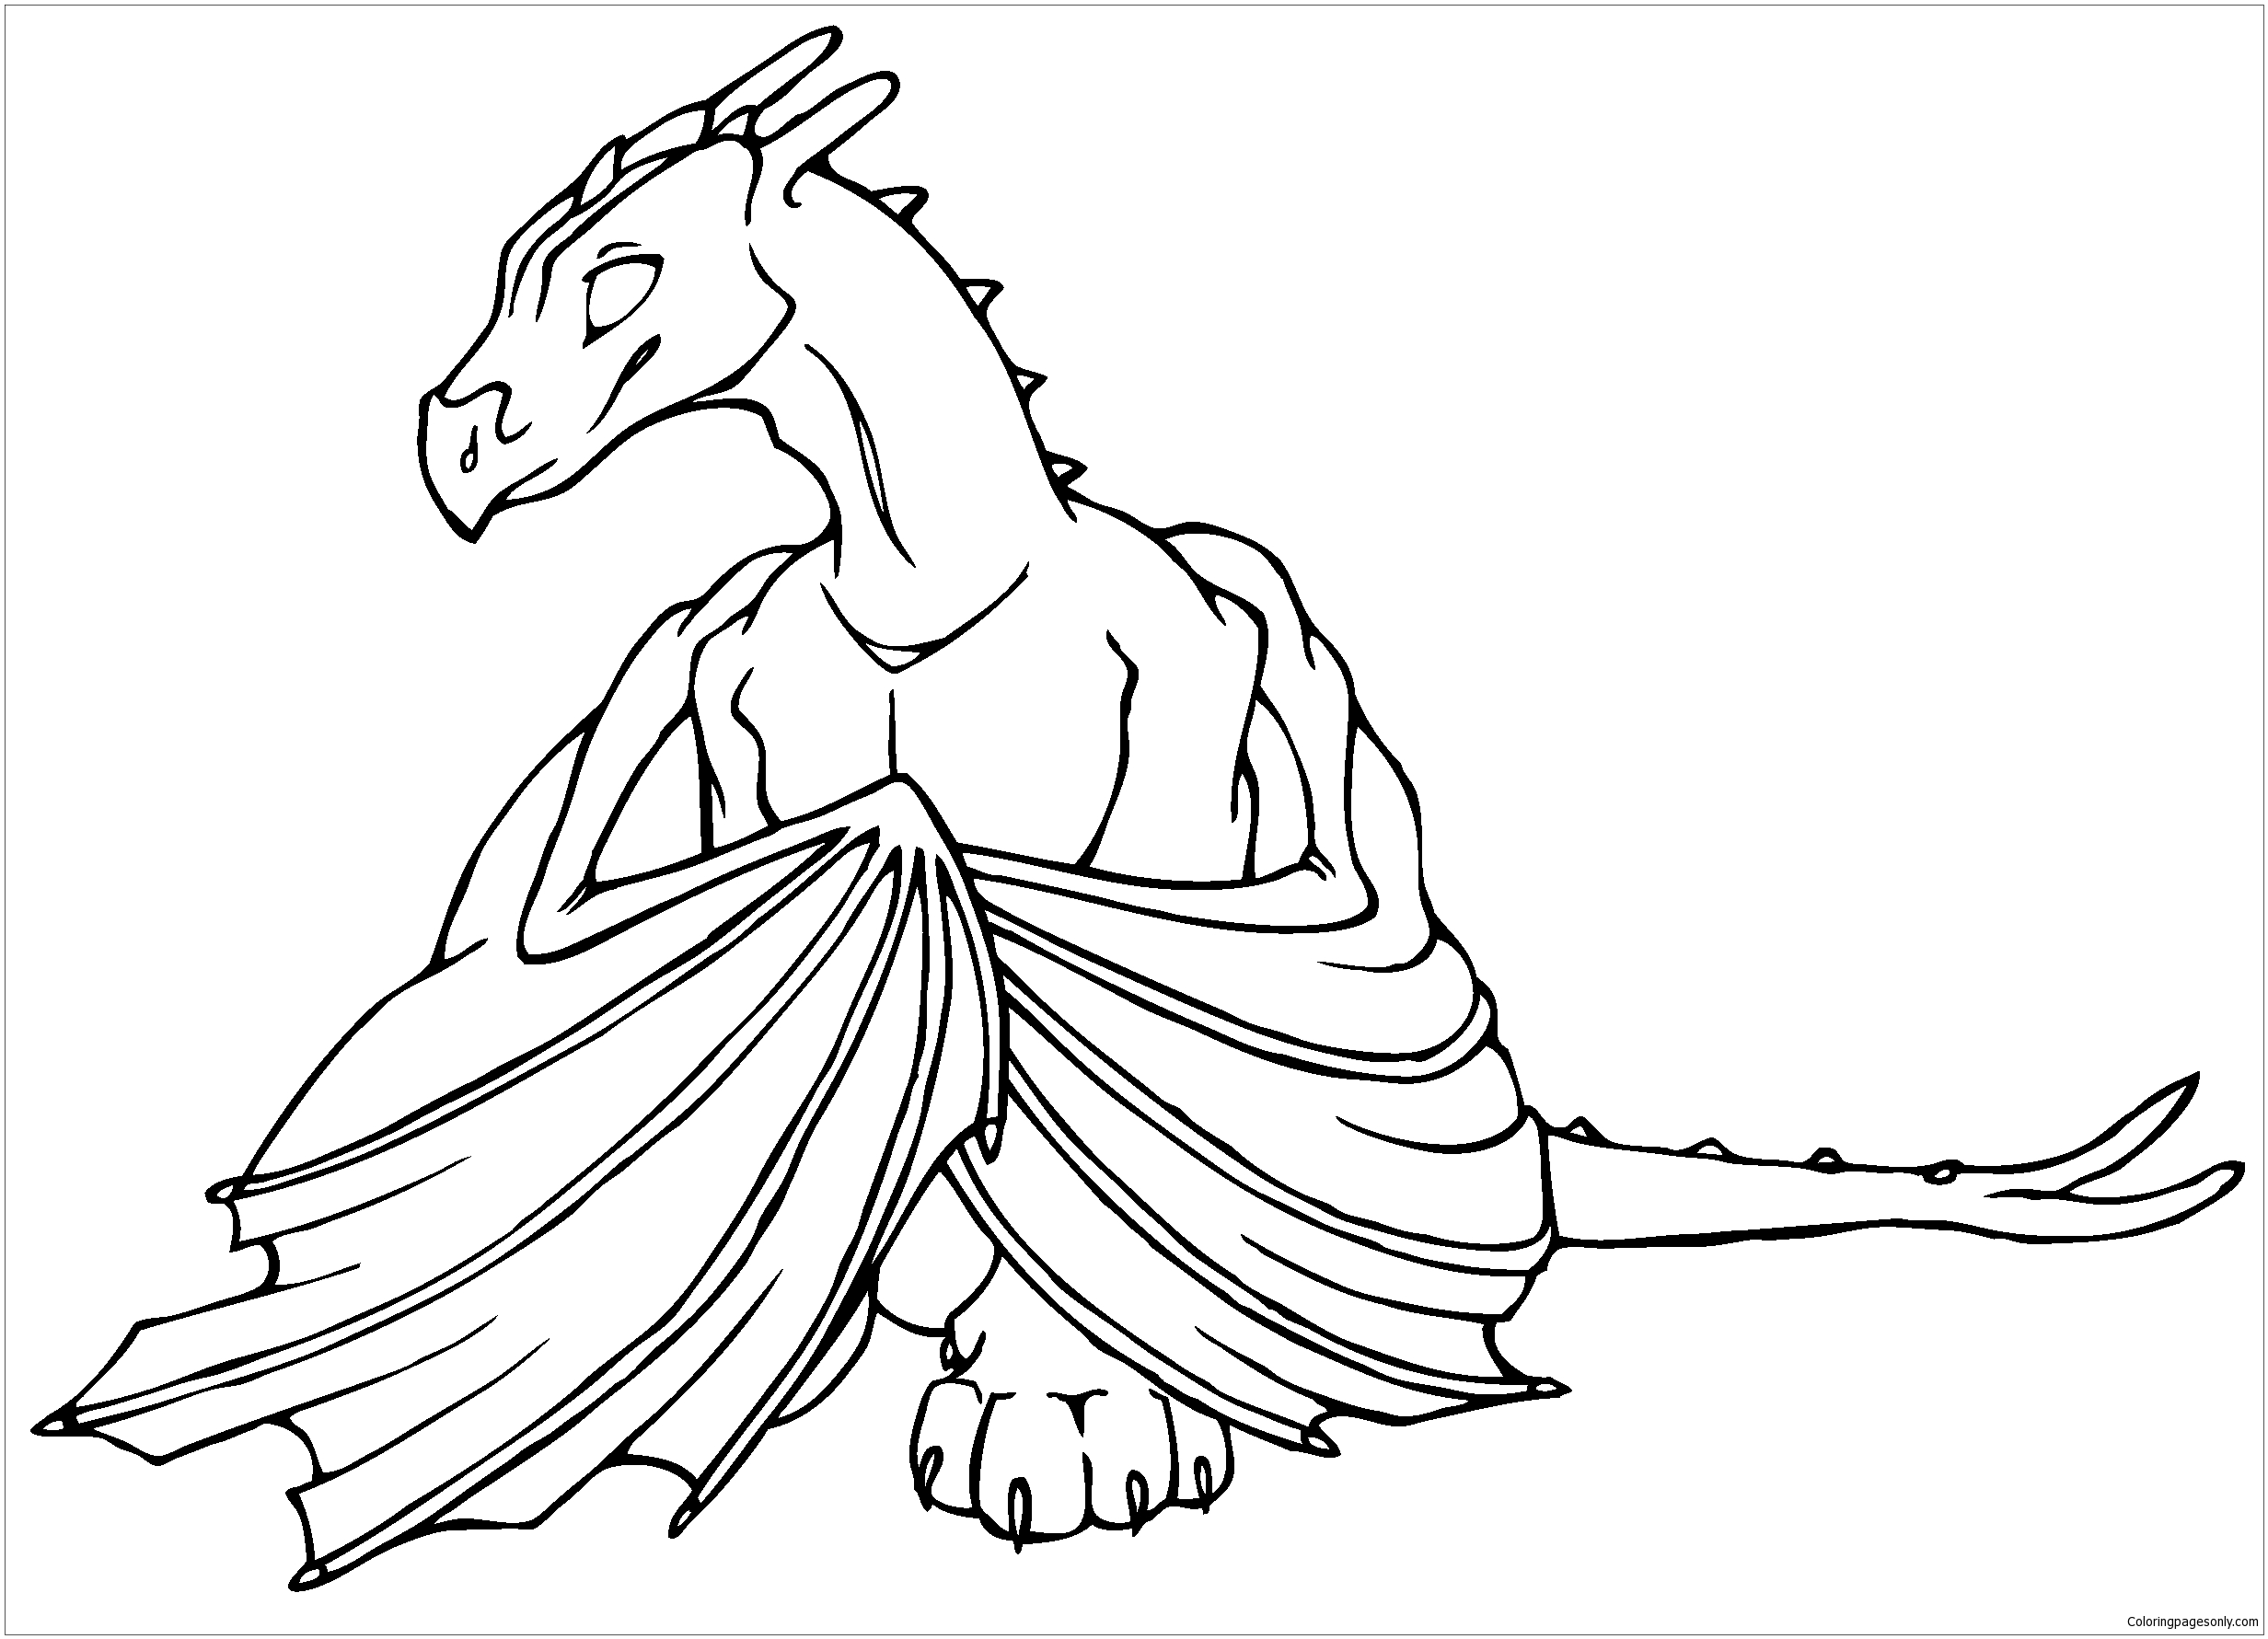 Challenge Baby Dragon Coloring Page - Free Coloring Pages Online